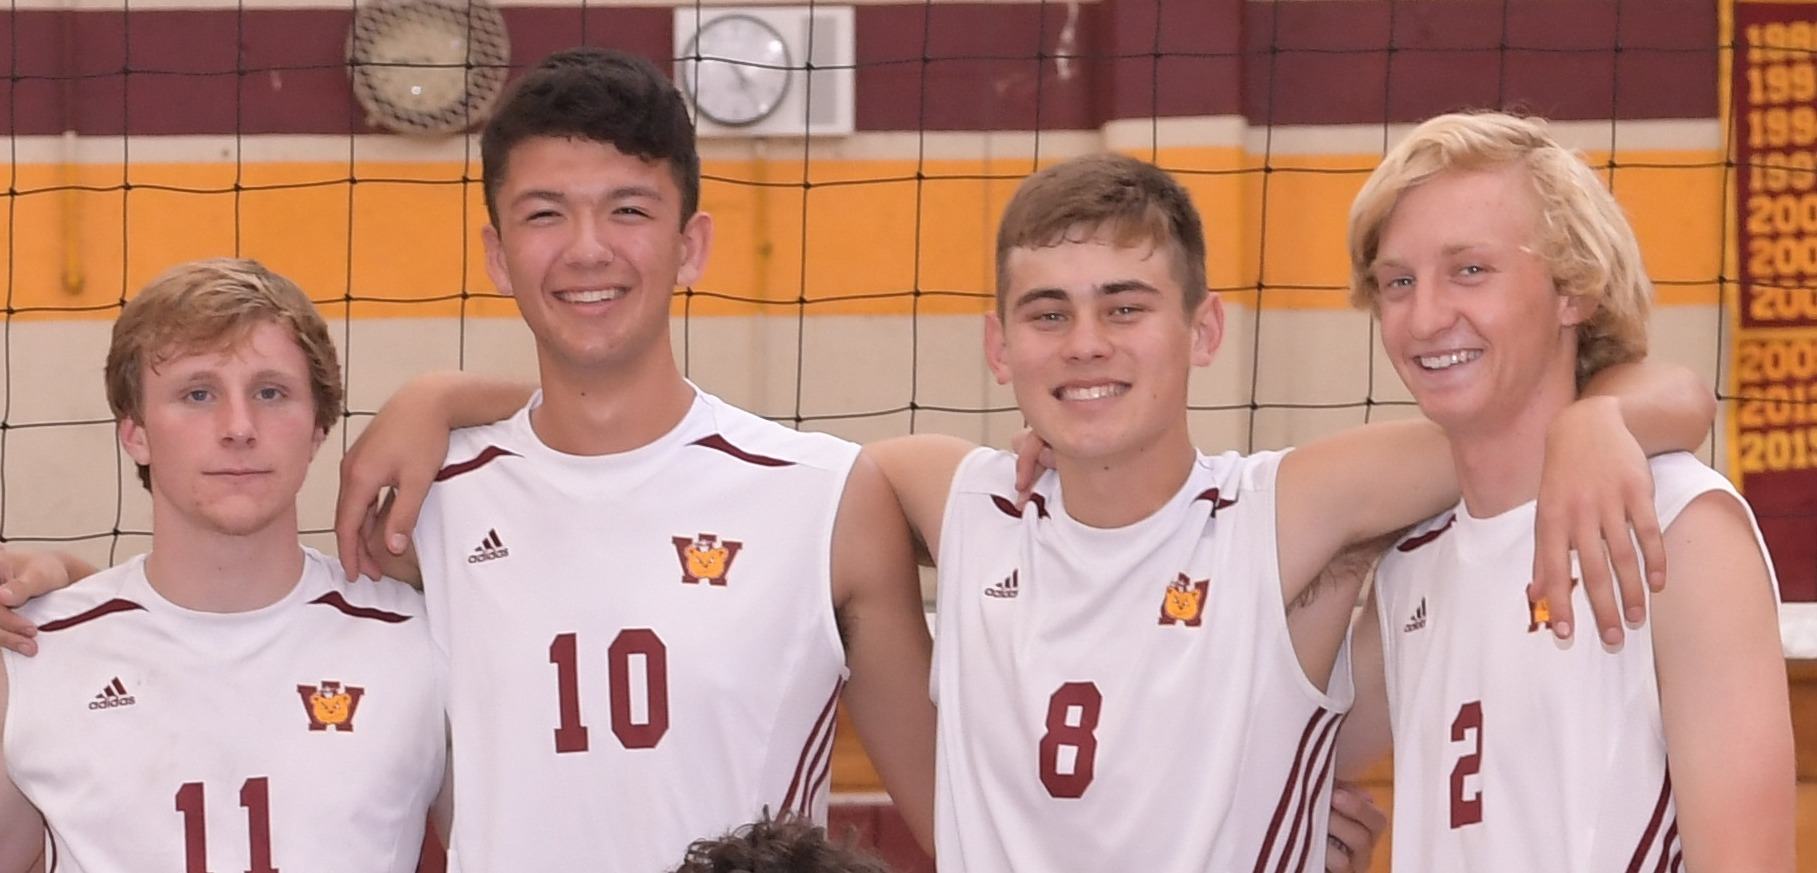 boys volleyball team smile for a photo